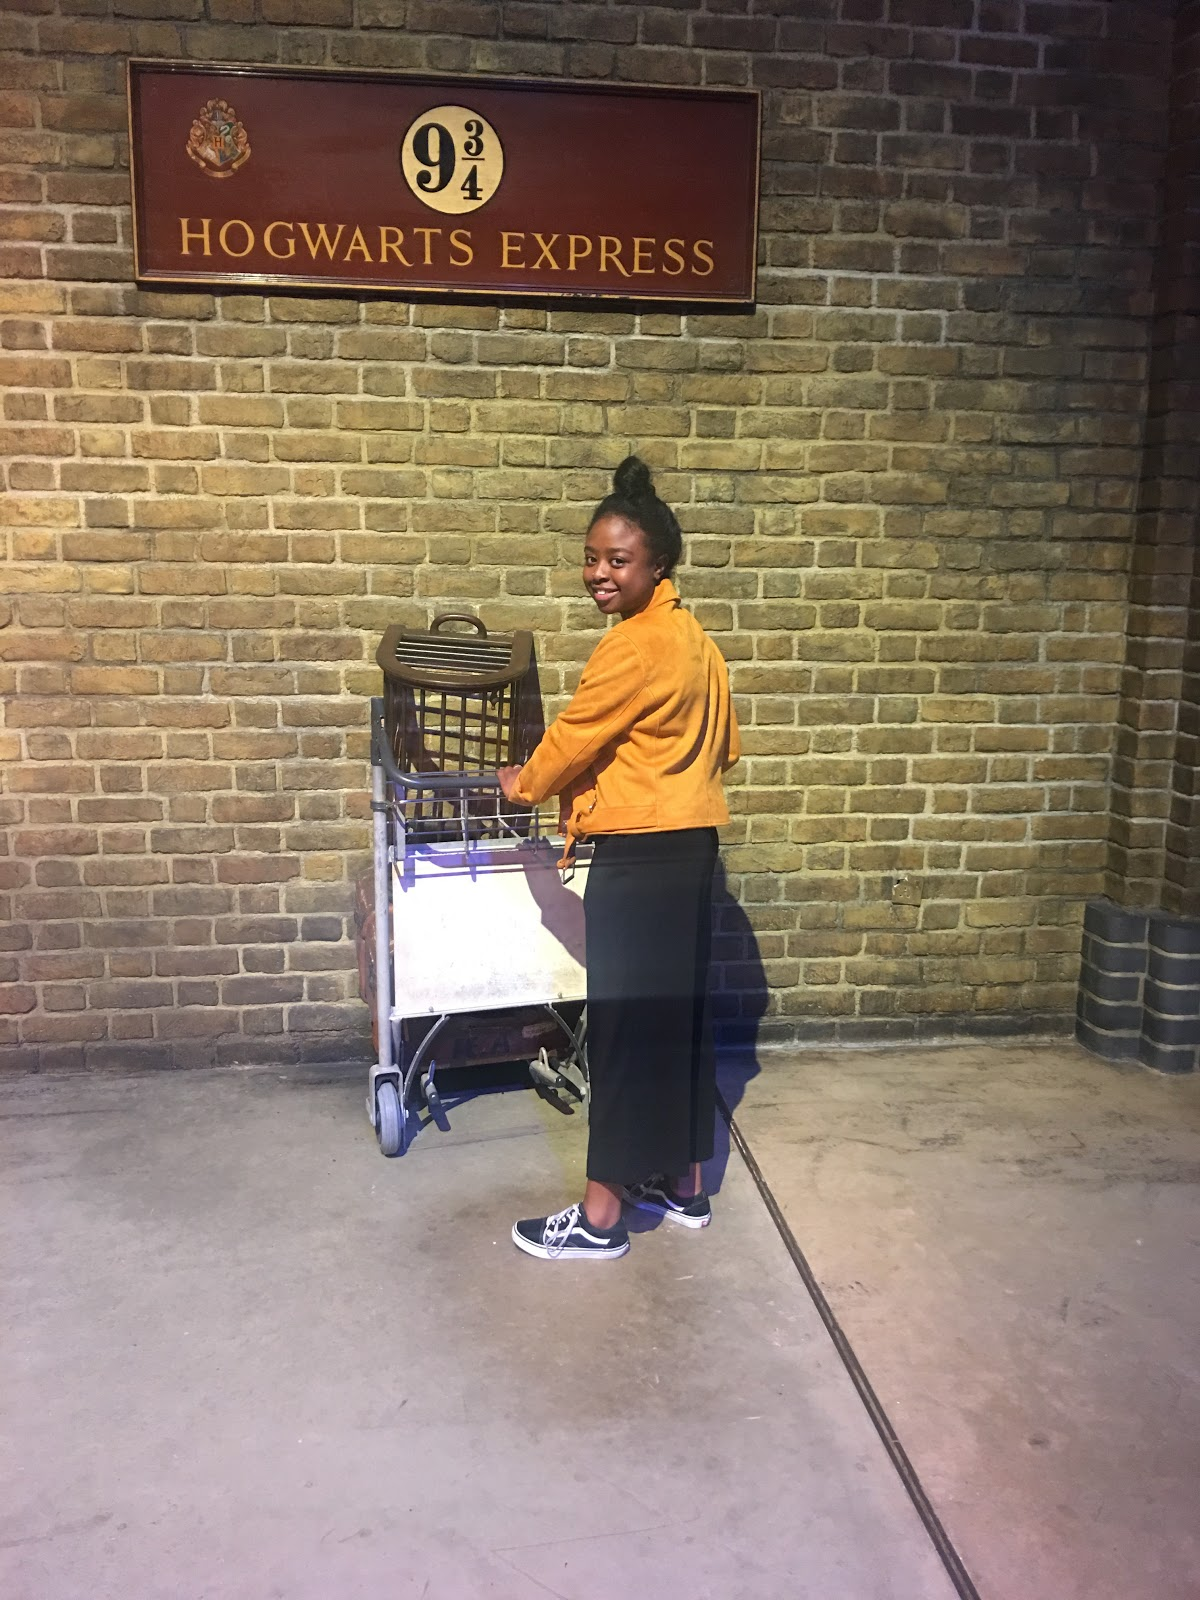 Pushing a trolley into platform 9 3/4 at Harry Potter studios